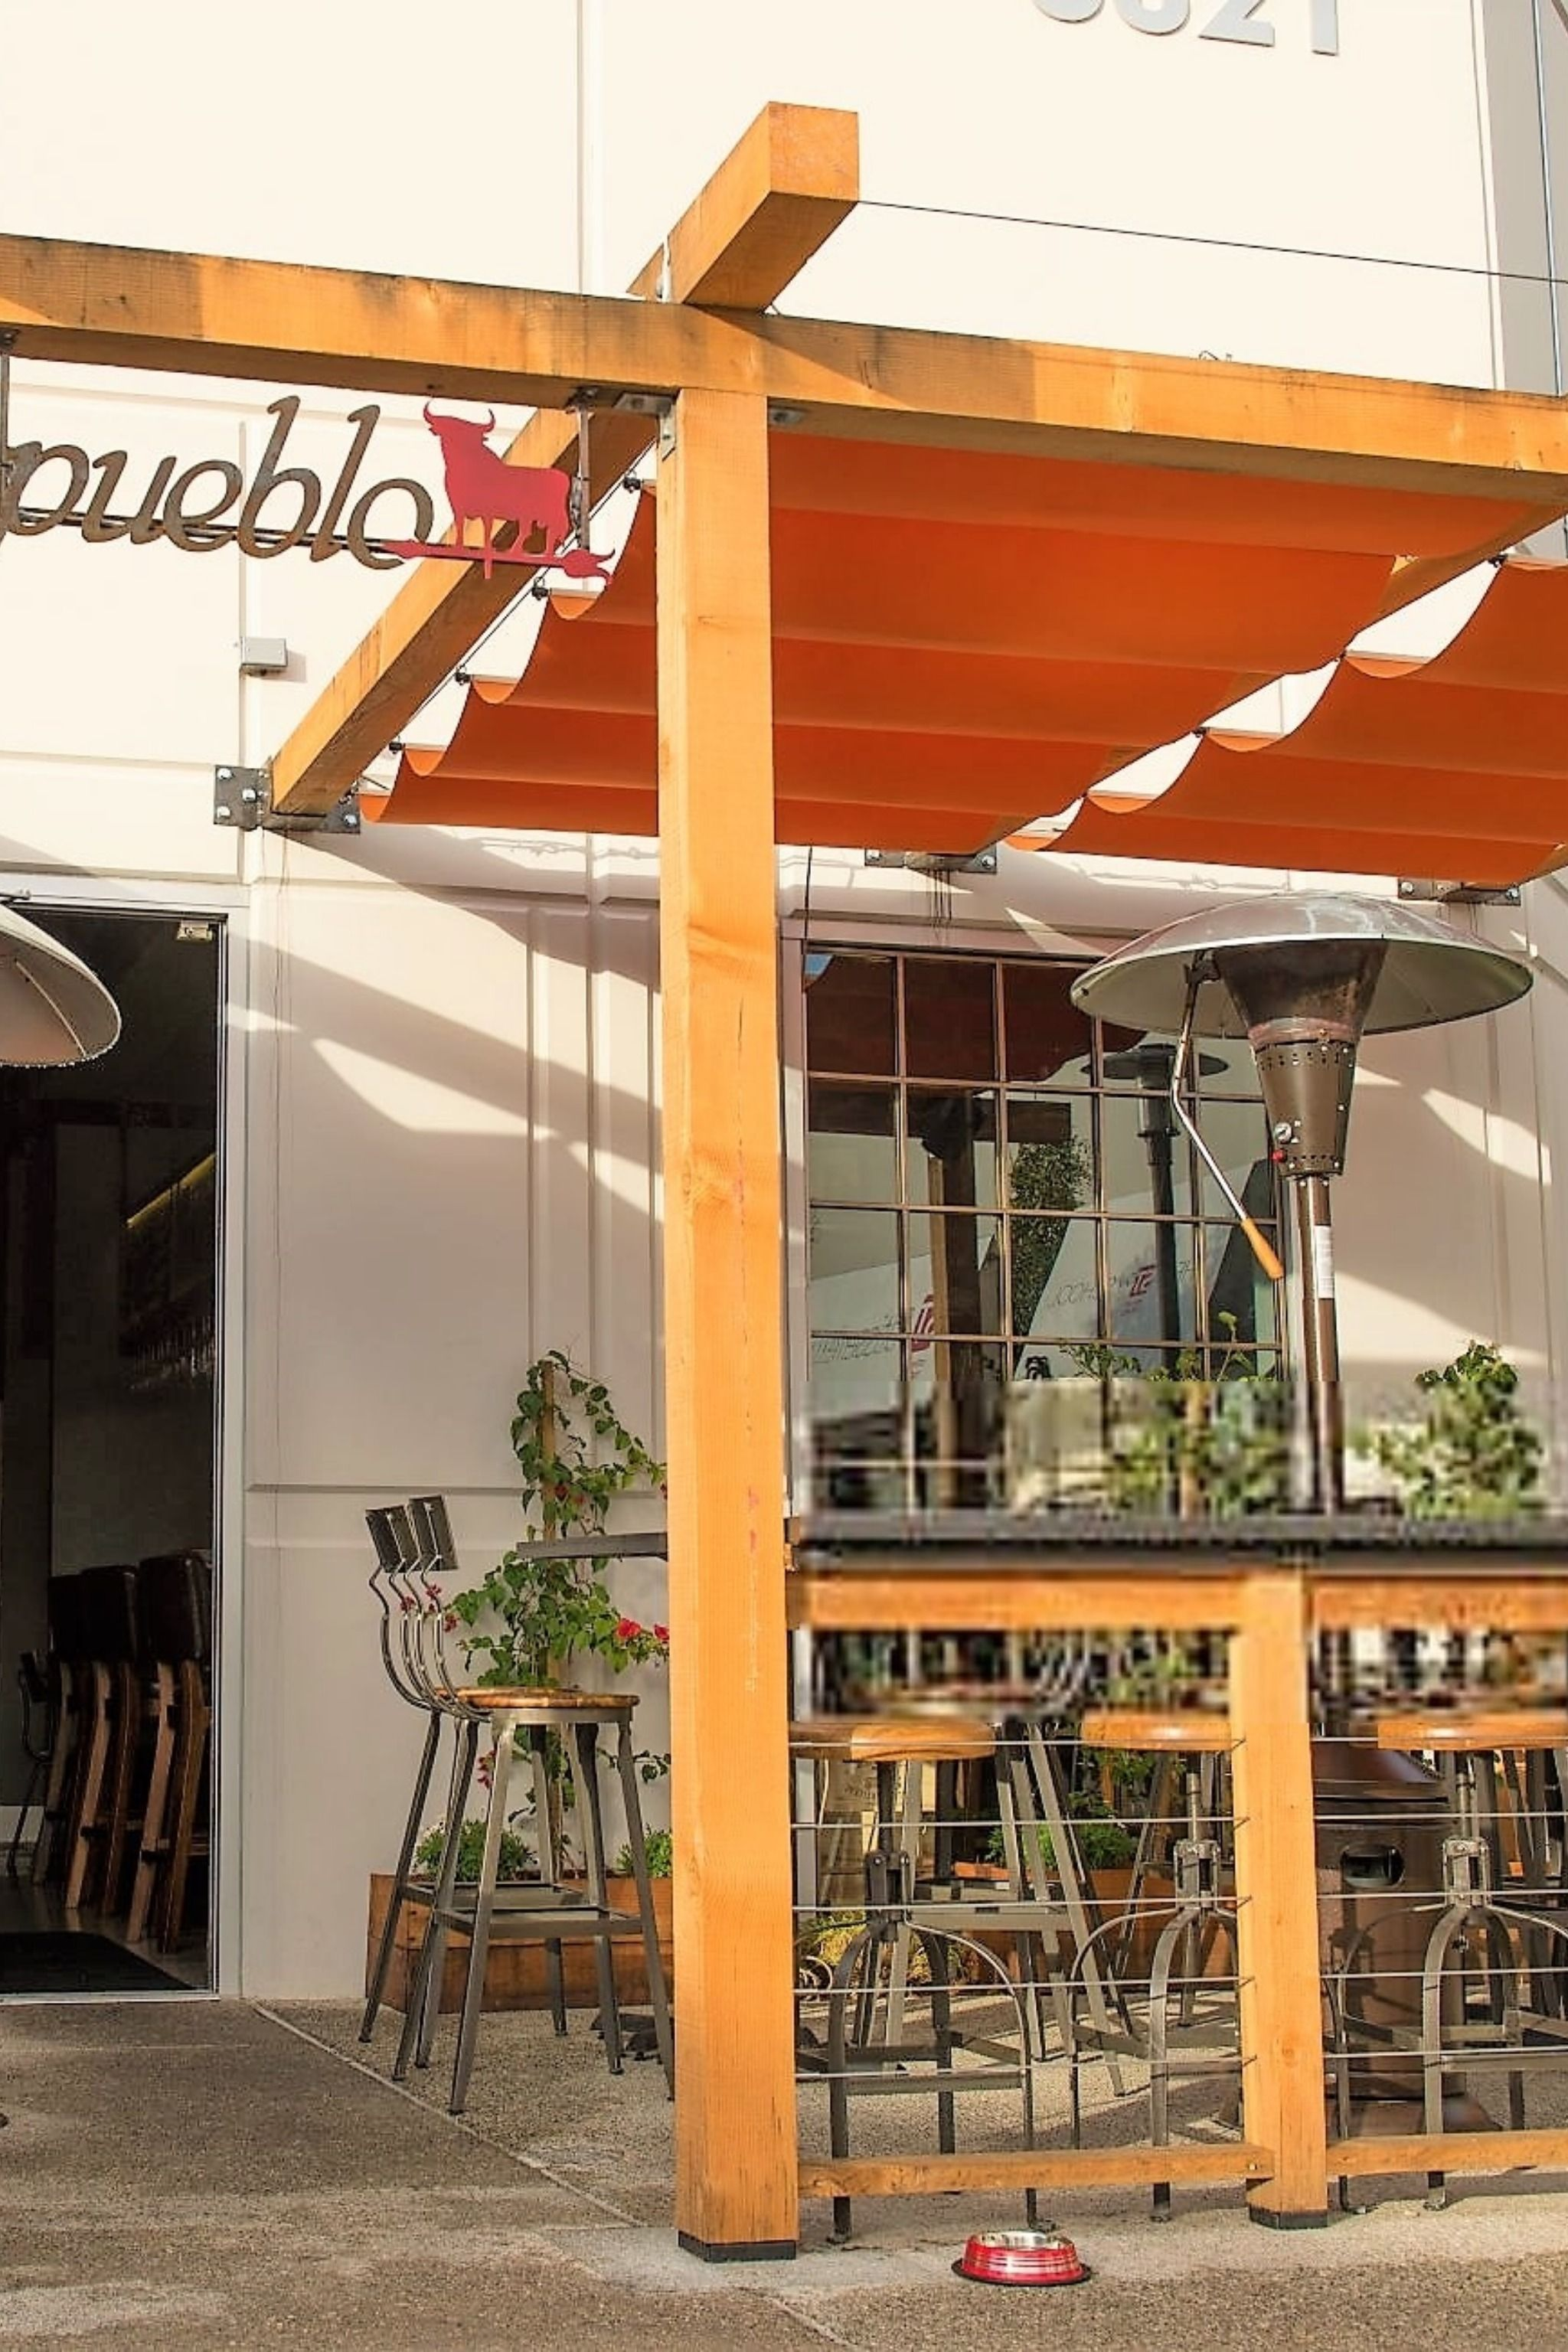 Look At These Red Cableshade Canopies At The Pueblo Restaurant In Costa Mesa Choose From 100 S Of Available Sunb Pergola Shade Fabric Canopy Pergola